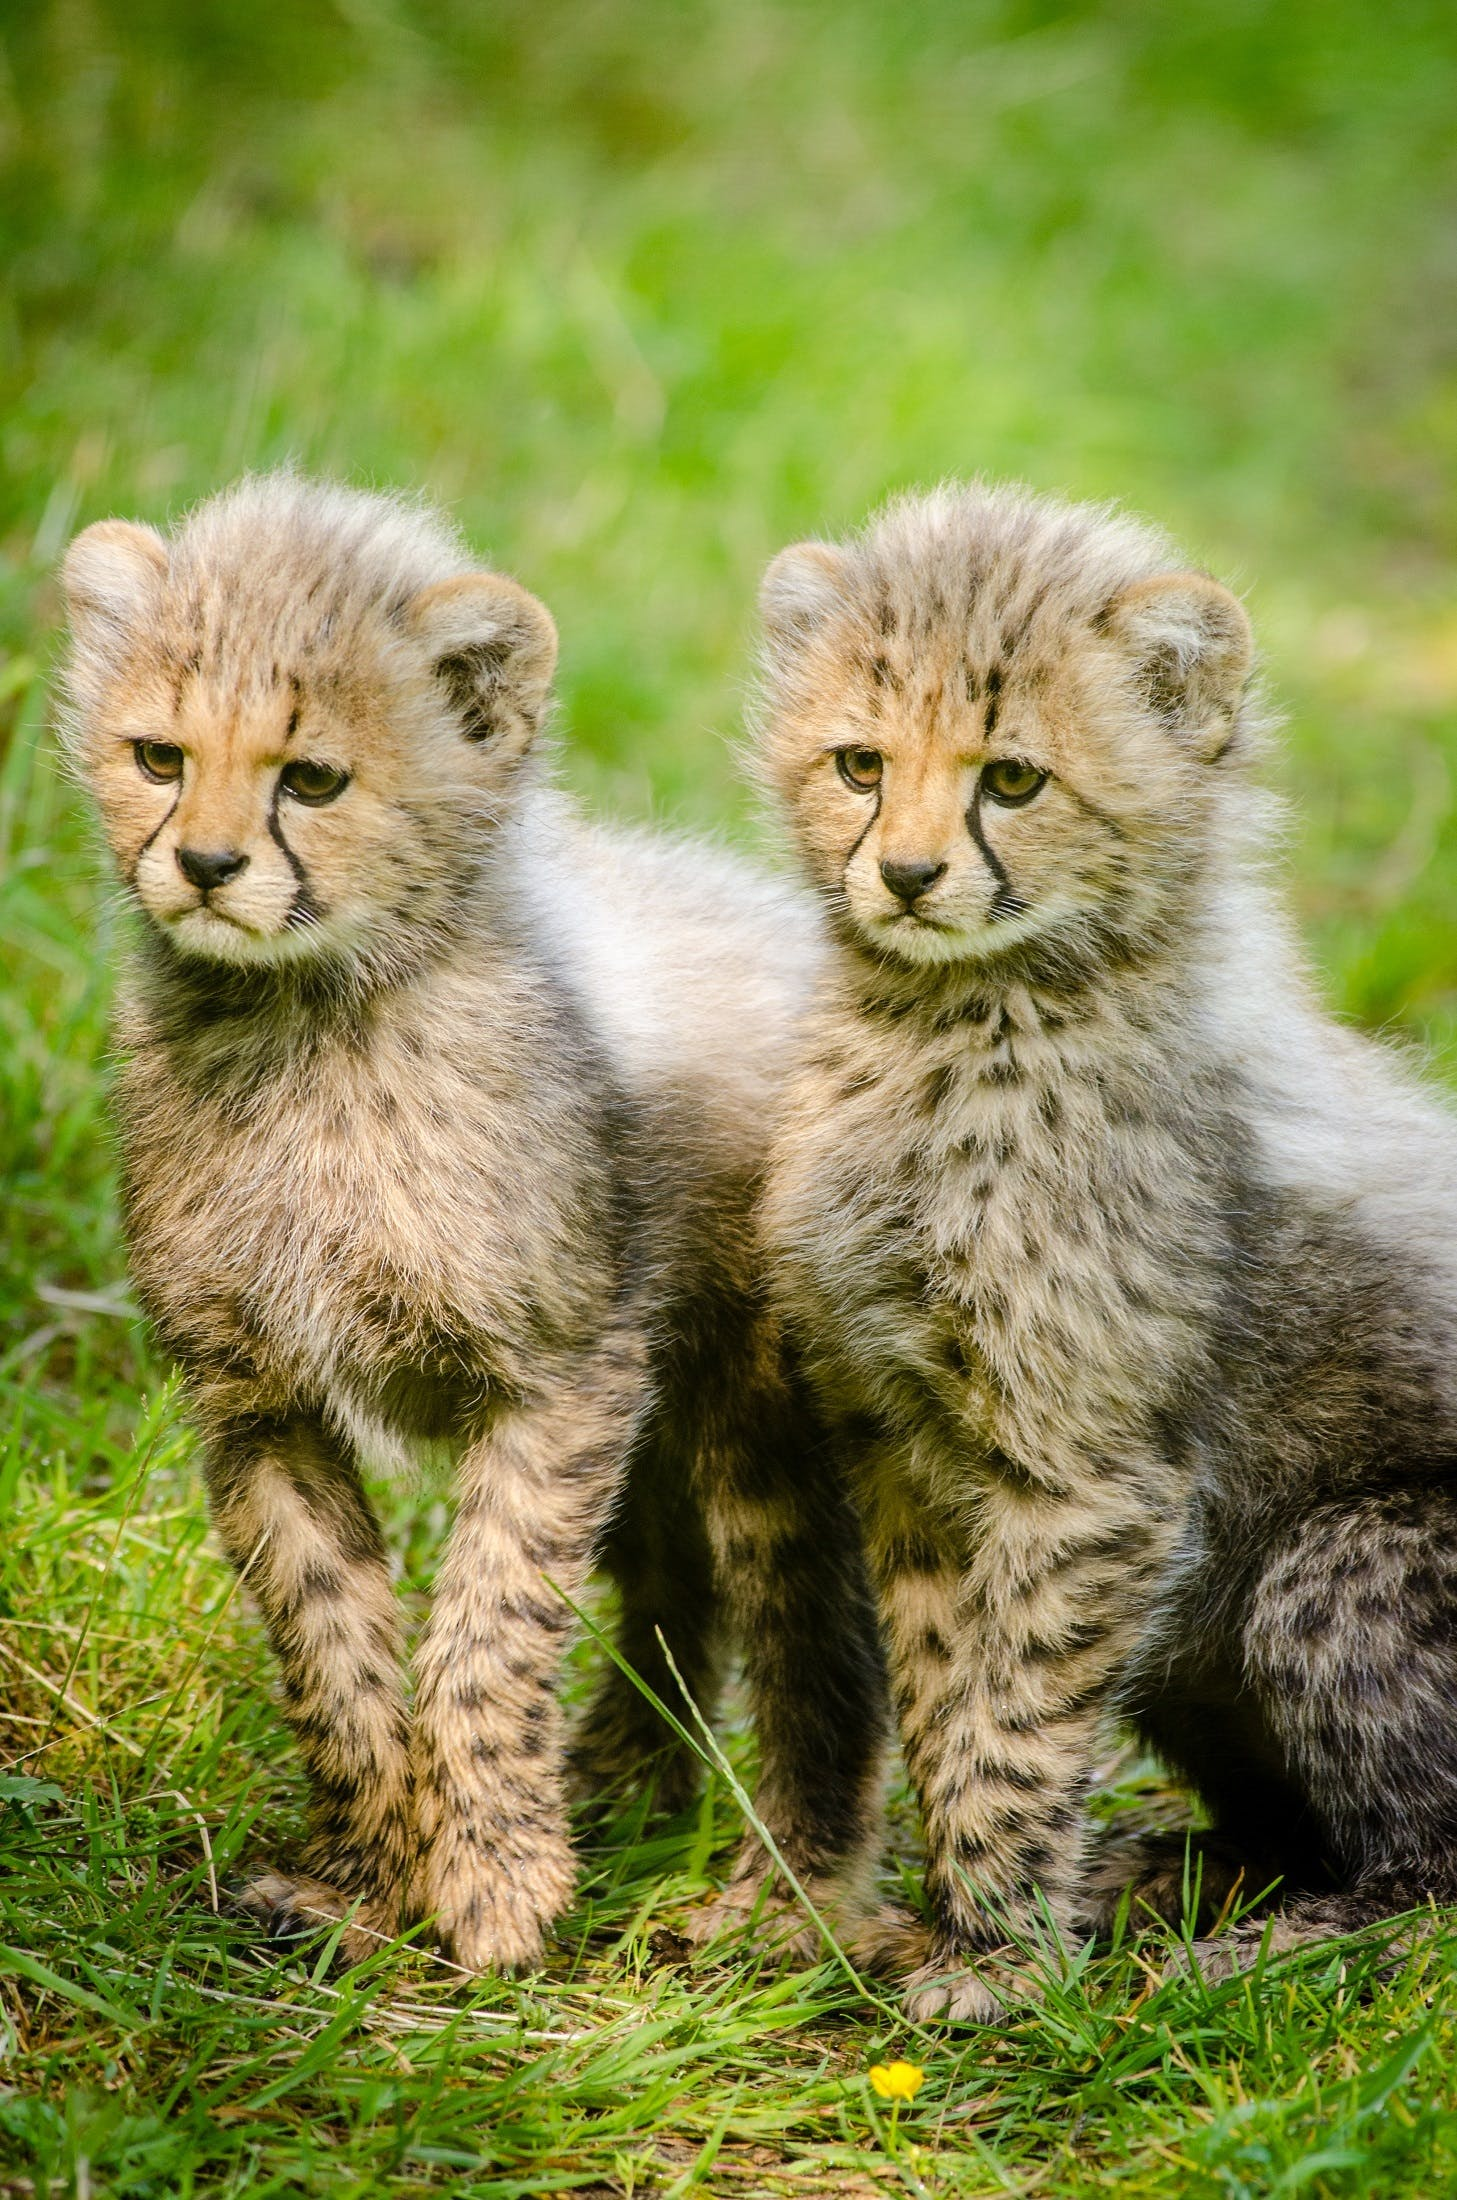 2 Yellow and Black Cheetah Sitting Together